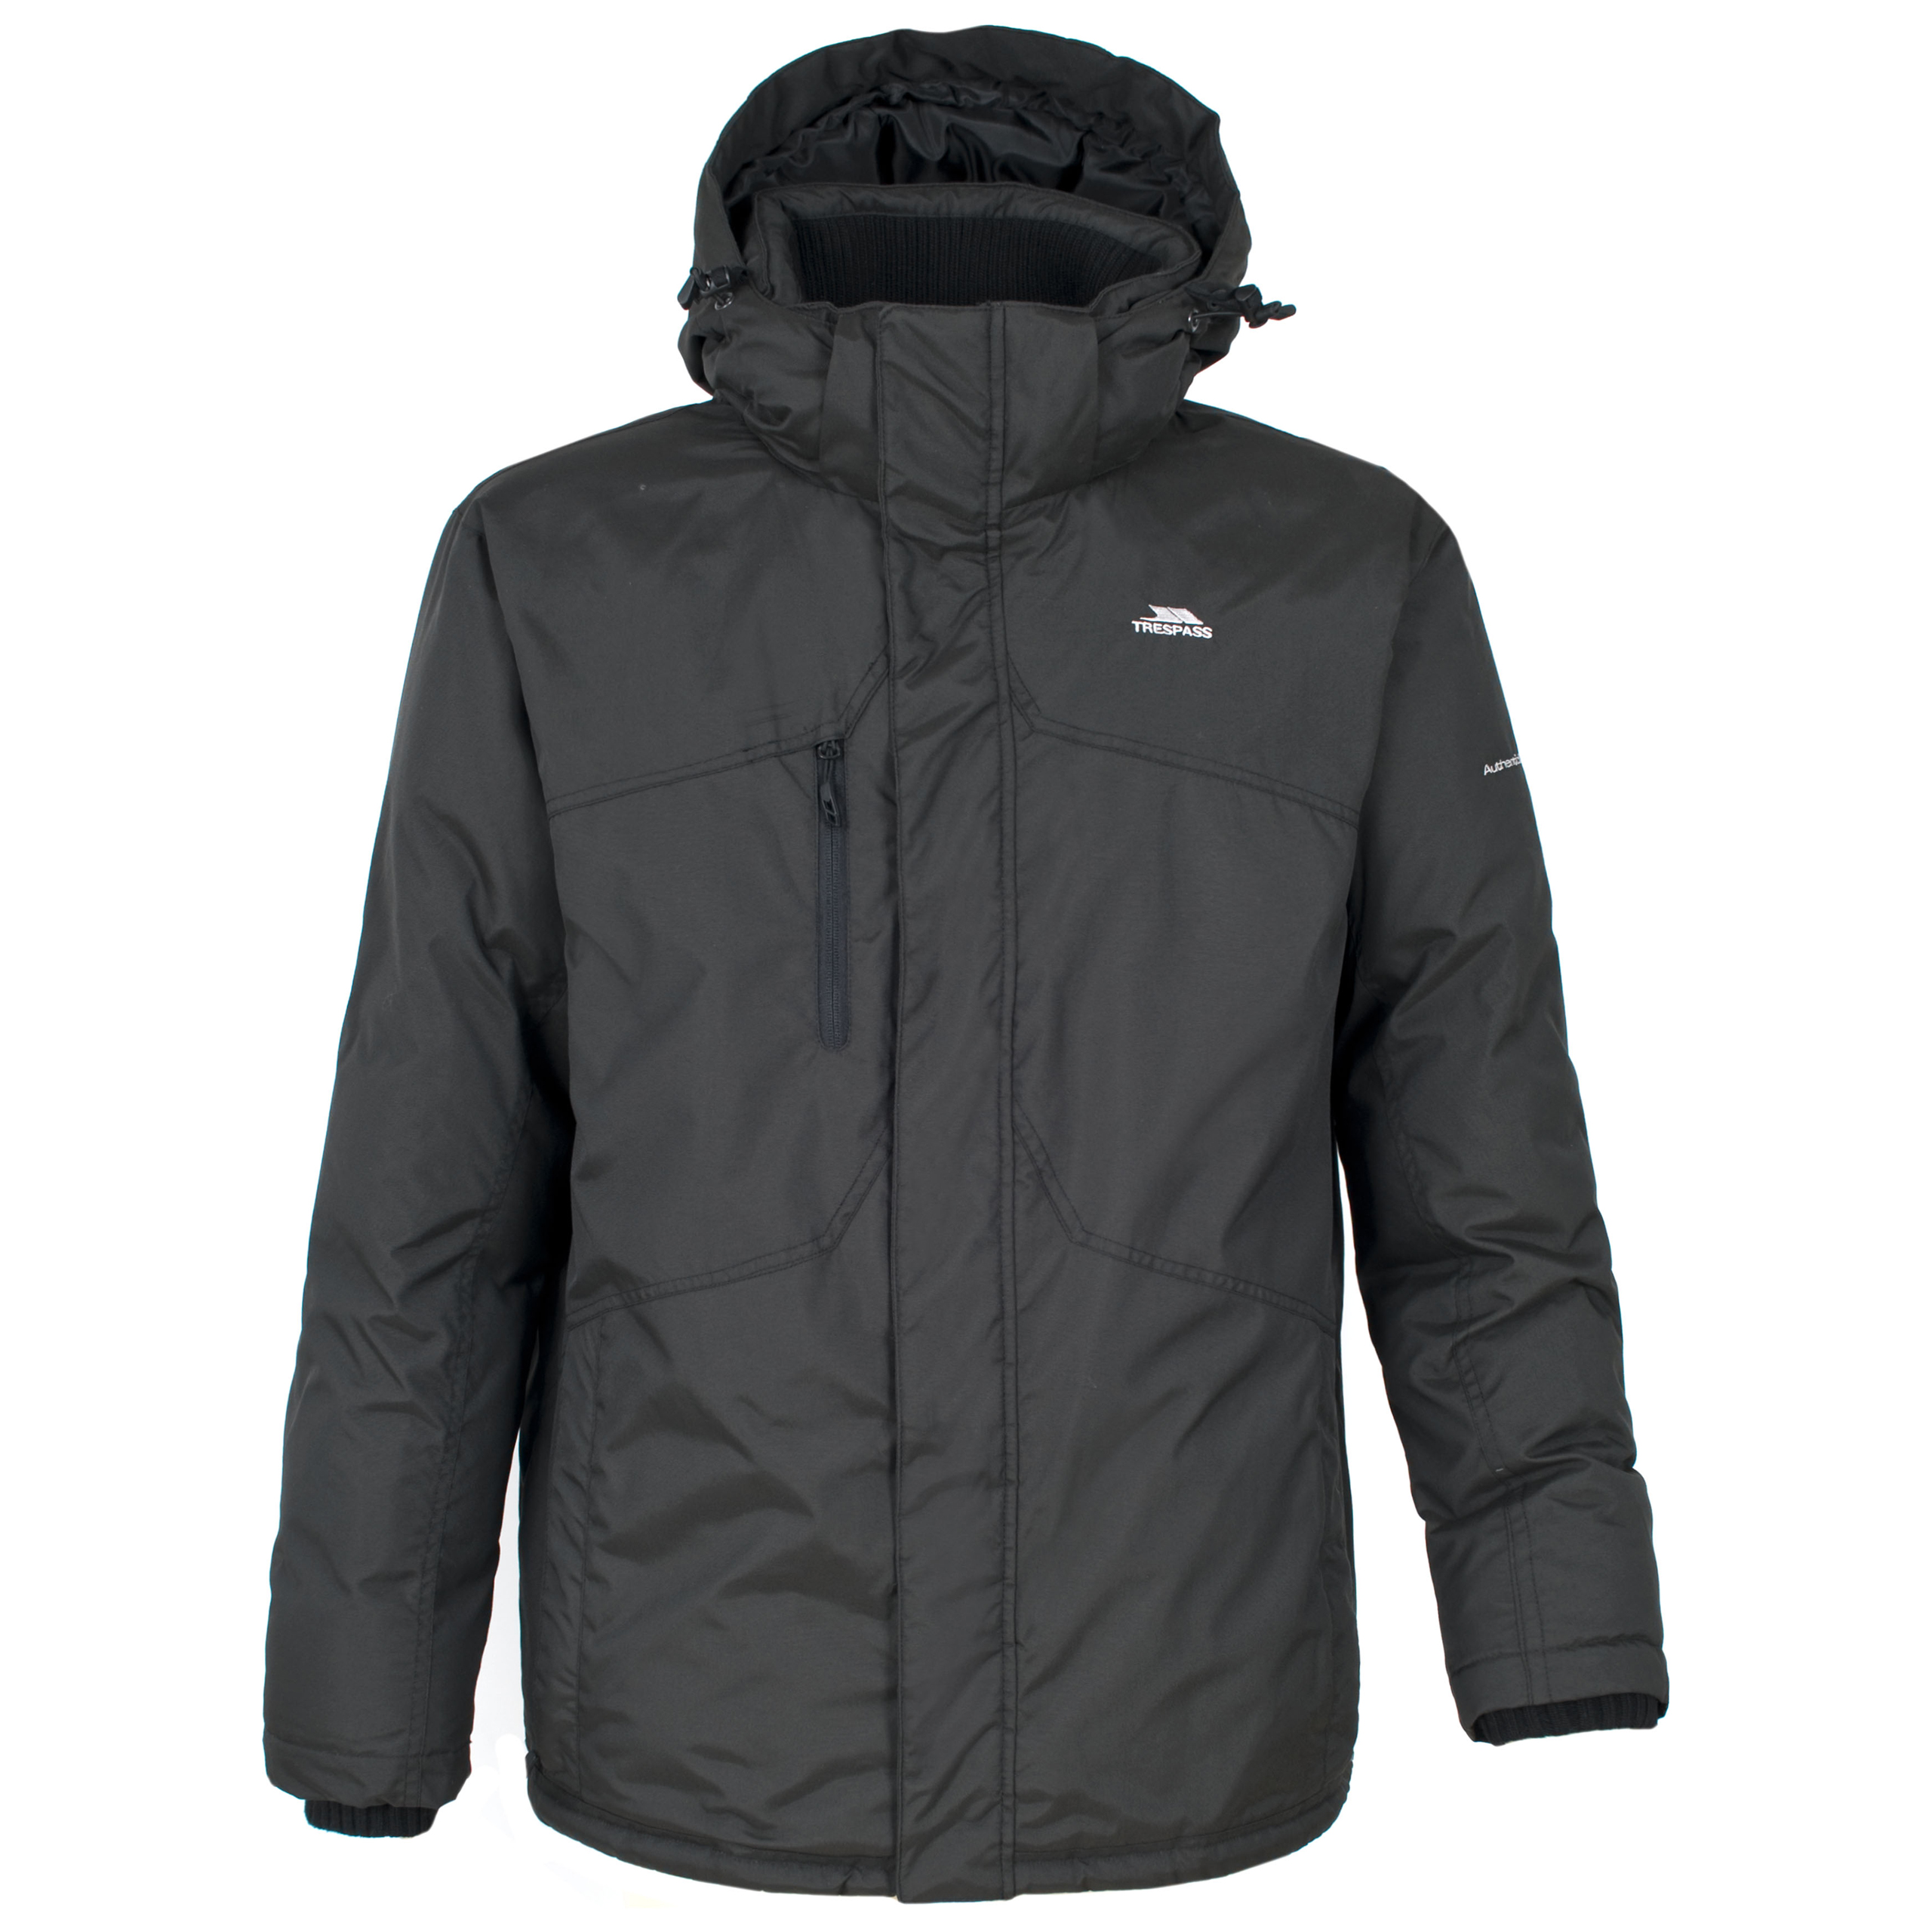 Shop the Mountain Warehouse range of mens ski piserialajax.cfable value· Tracked shipping· Exclusive product ranges· Next day delivery34,+ followers on Twitter.